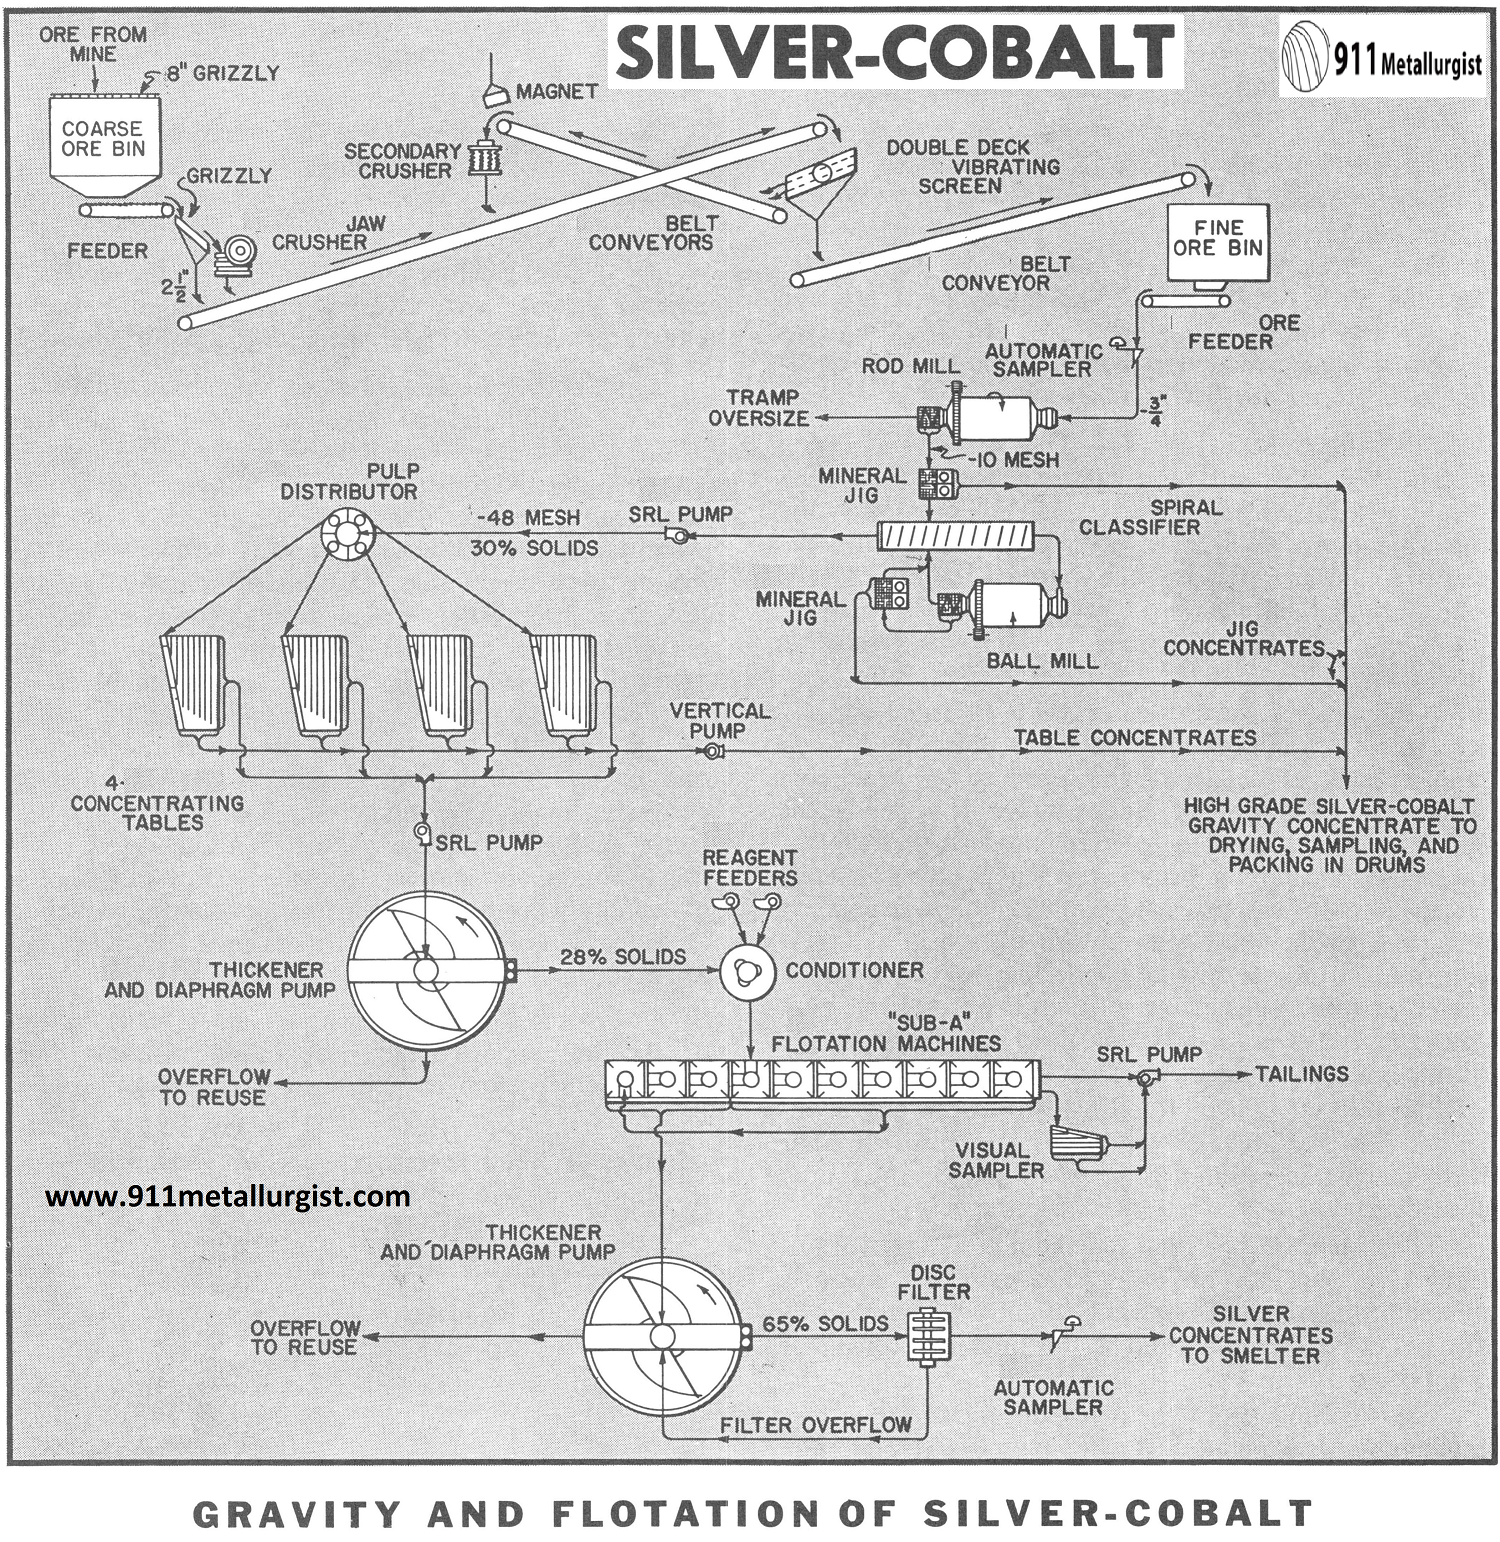 Gravity and Flotation of Silver-Cobalt